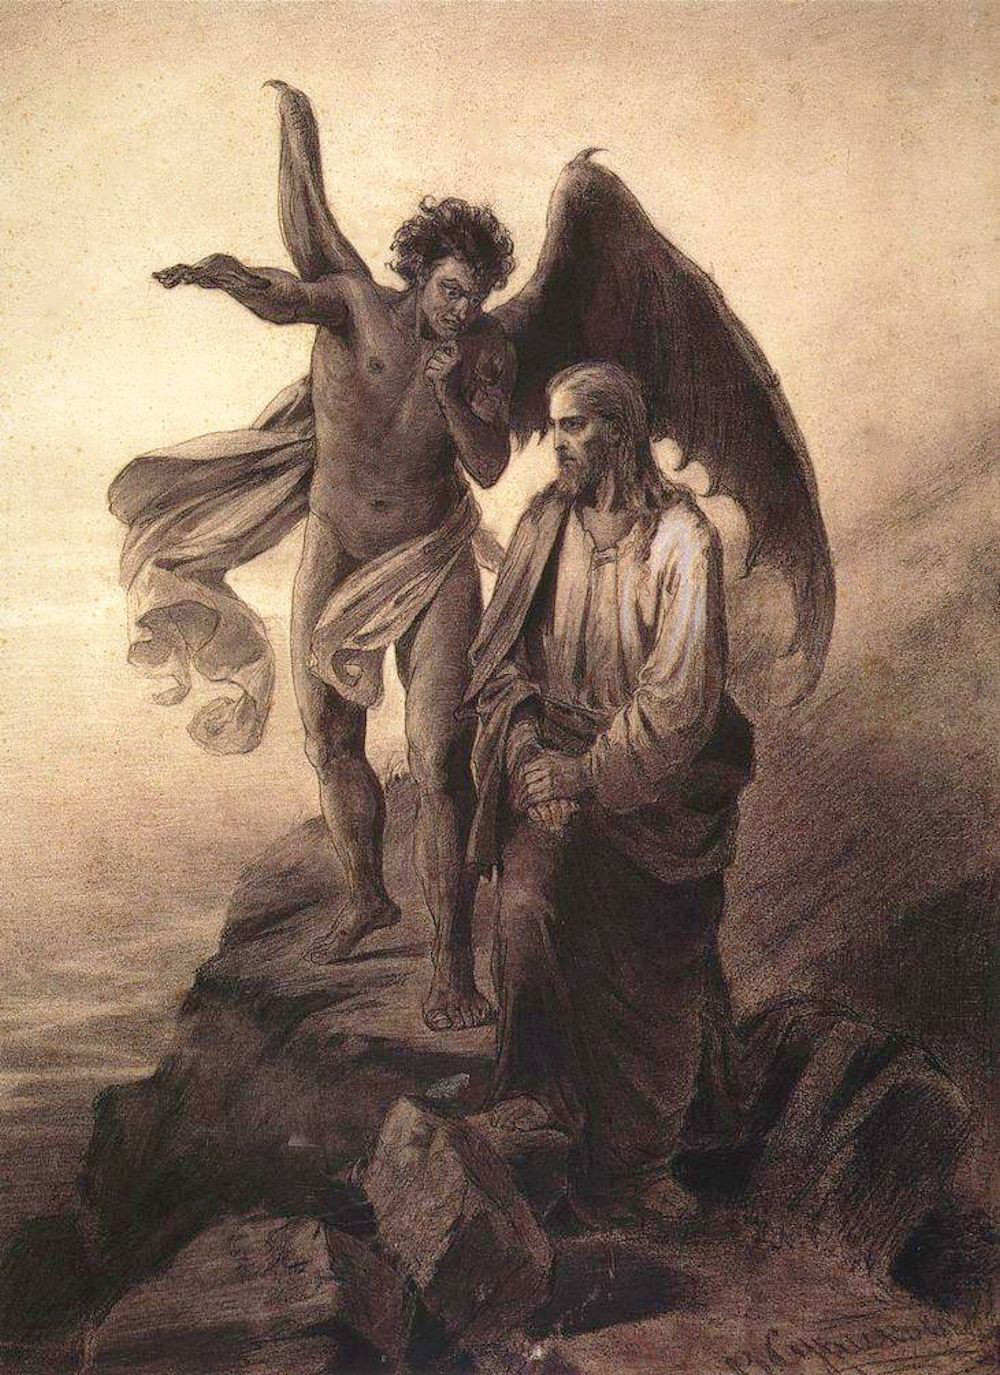 Temptation of Christ, by Vasili Surikov (1872)